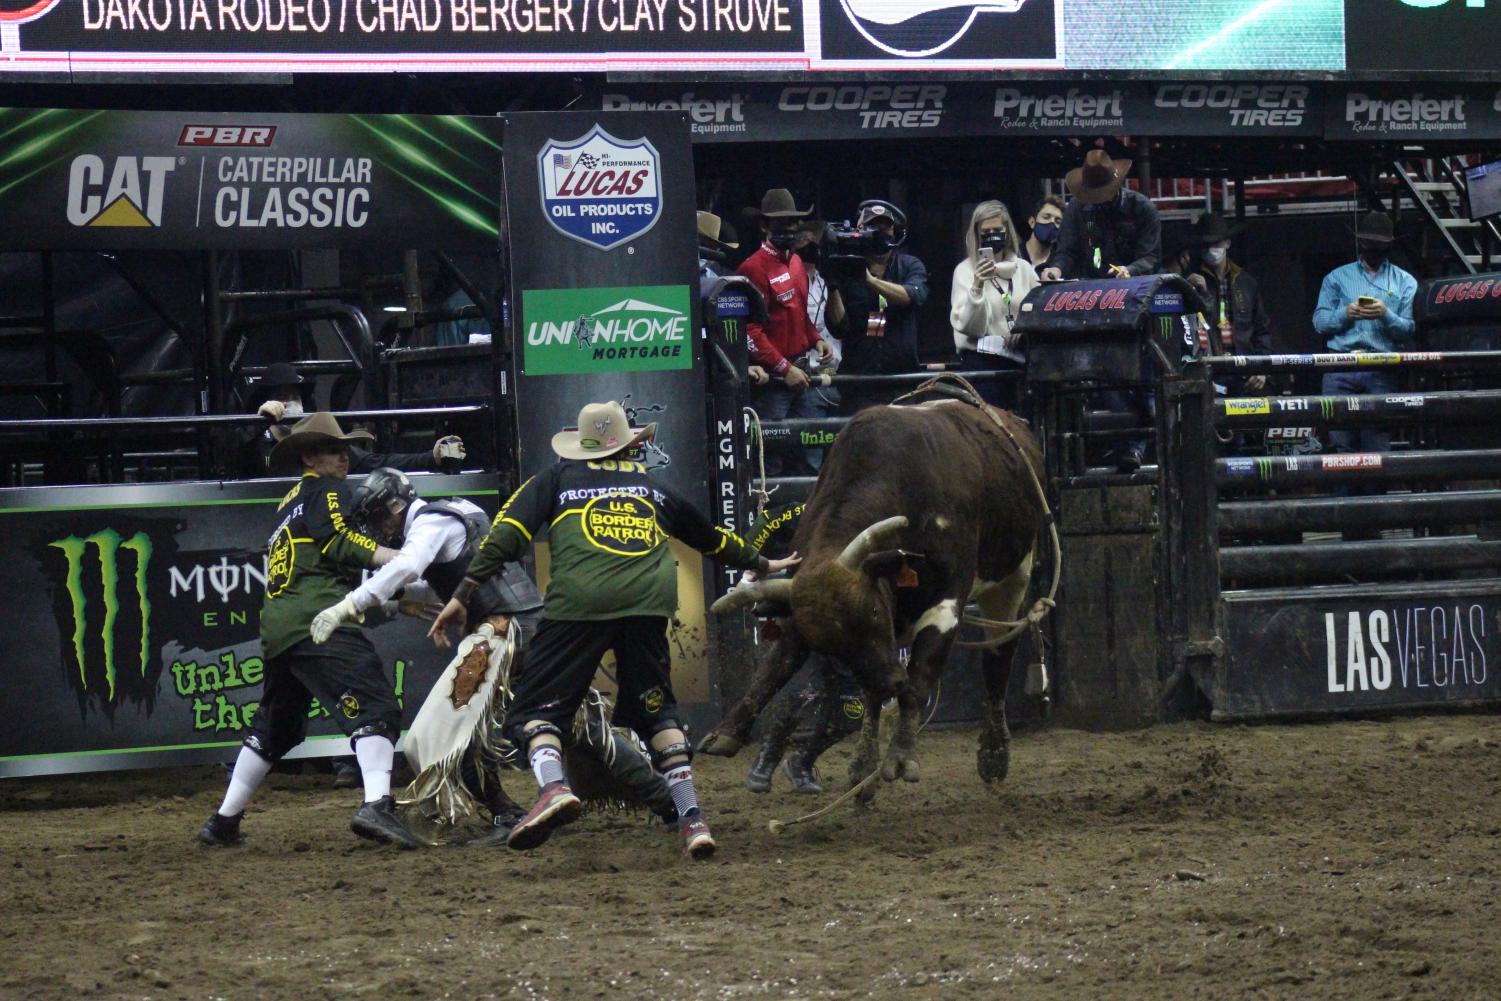 Cowboys+%26+Covid-19%3A+Professional+Bull+Riding+Event+Hosted+in+Kansas+City